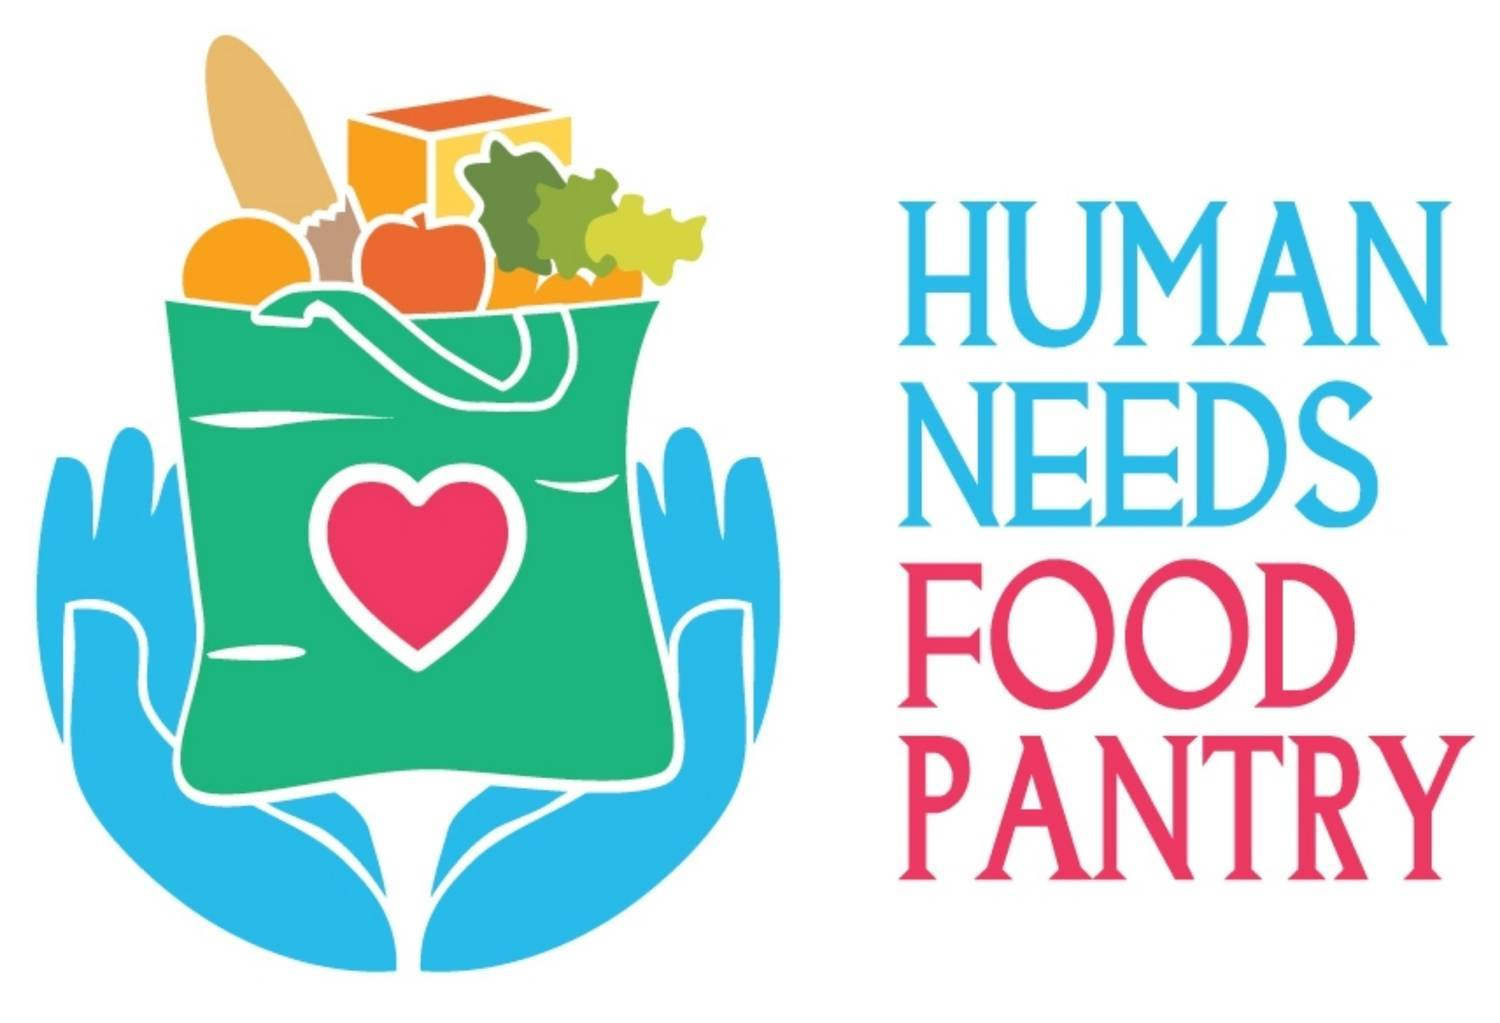 08daaf51d5f0309cc2c2_Human_Needs_Food_Pantry.jpg